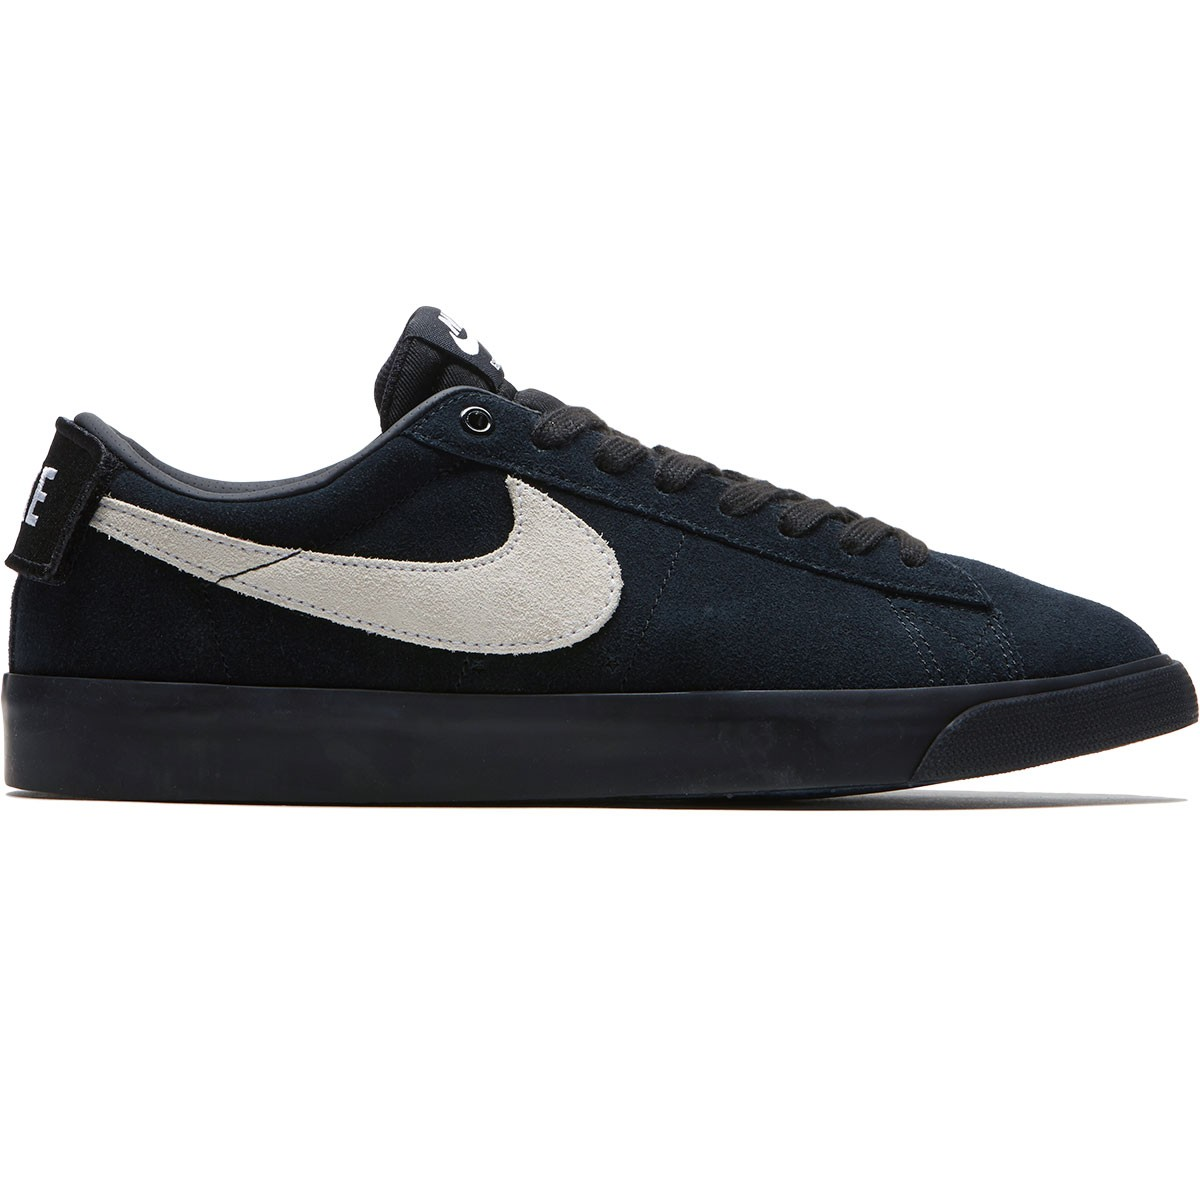 0e63f8af792d8f Nike SB Air Zoom Blazer Low GT Black Blocks Shoes - Black White Black